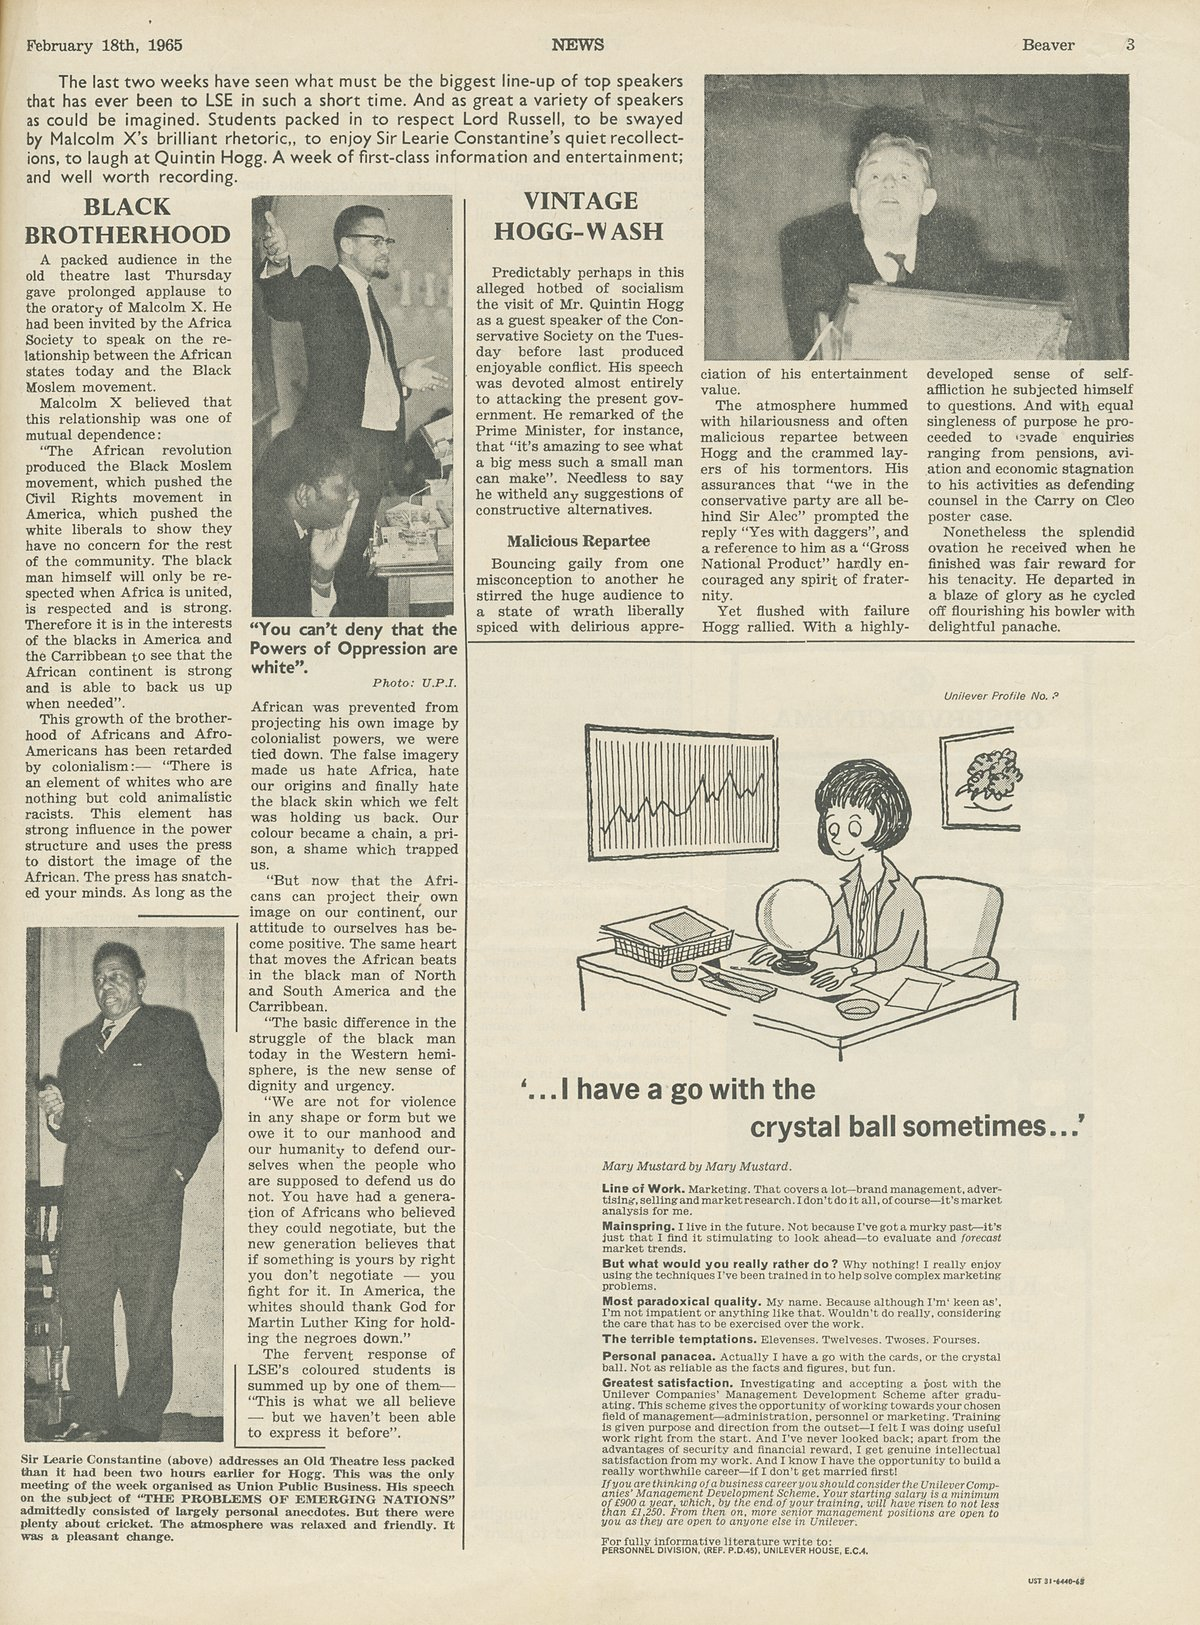 The Beaver, 18 February 1965. Article on Malcolm X speaking at LSE.